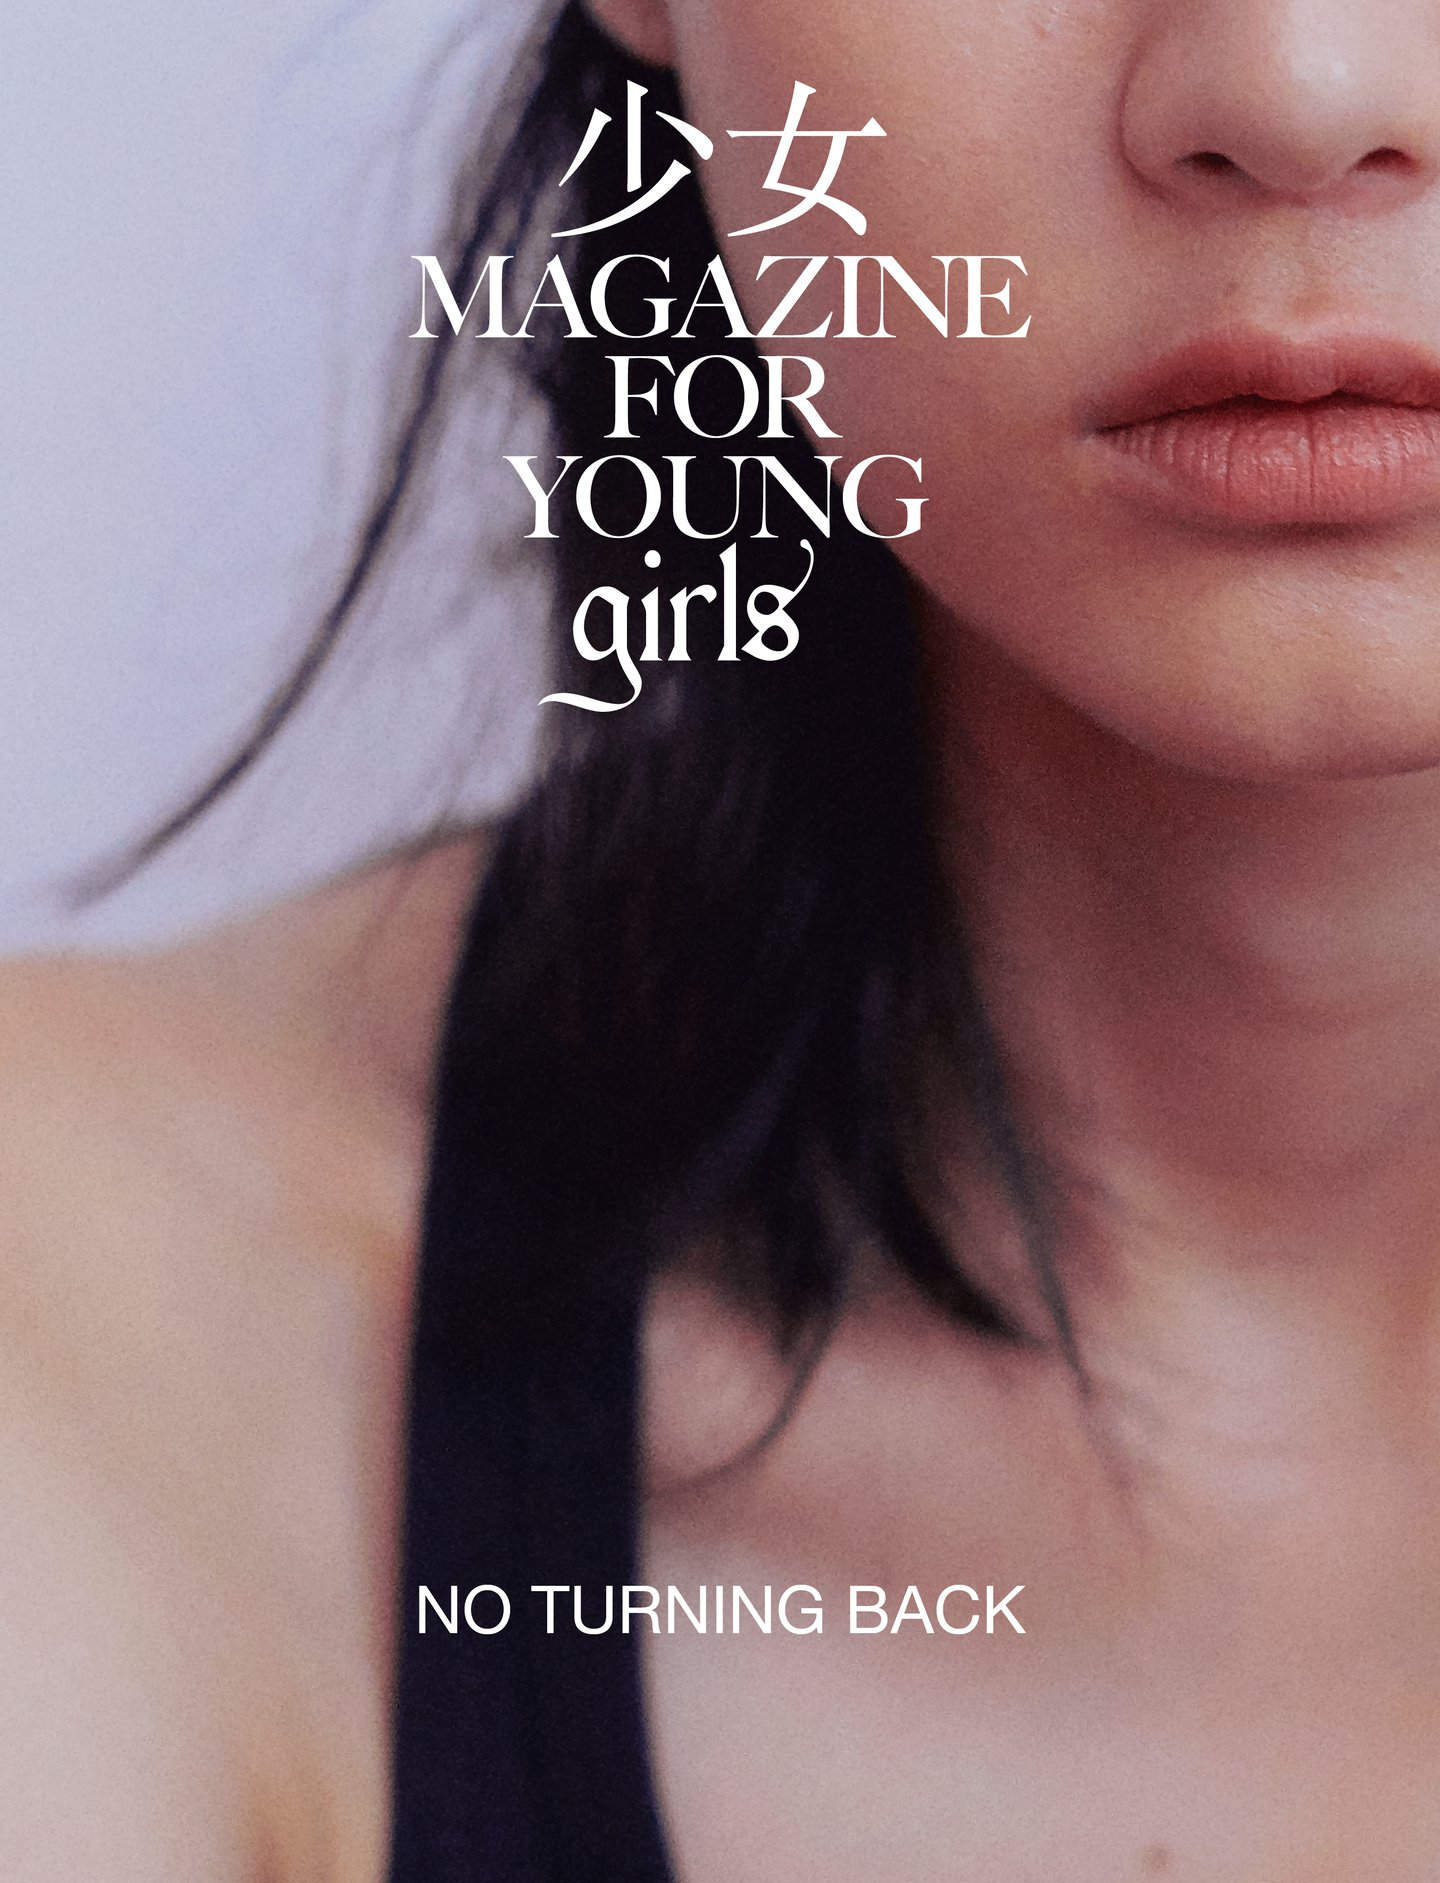 What if your life doesn't fit in with the media? Magazine for Young Girls is an escape through print